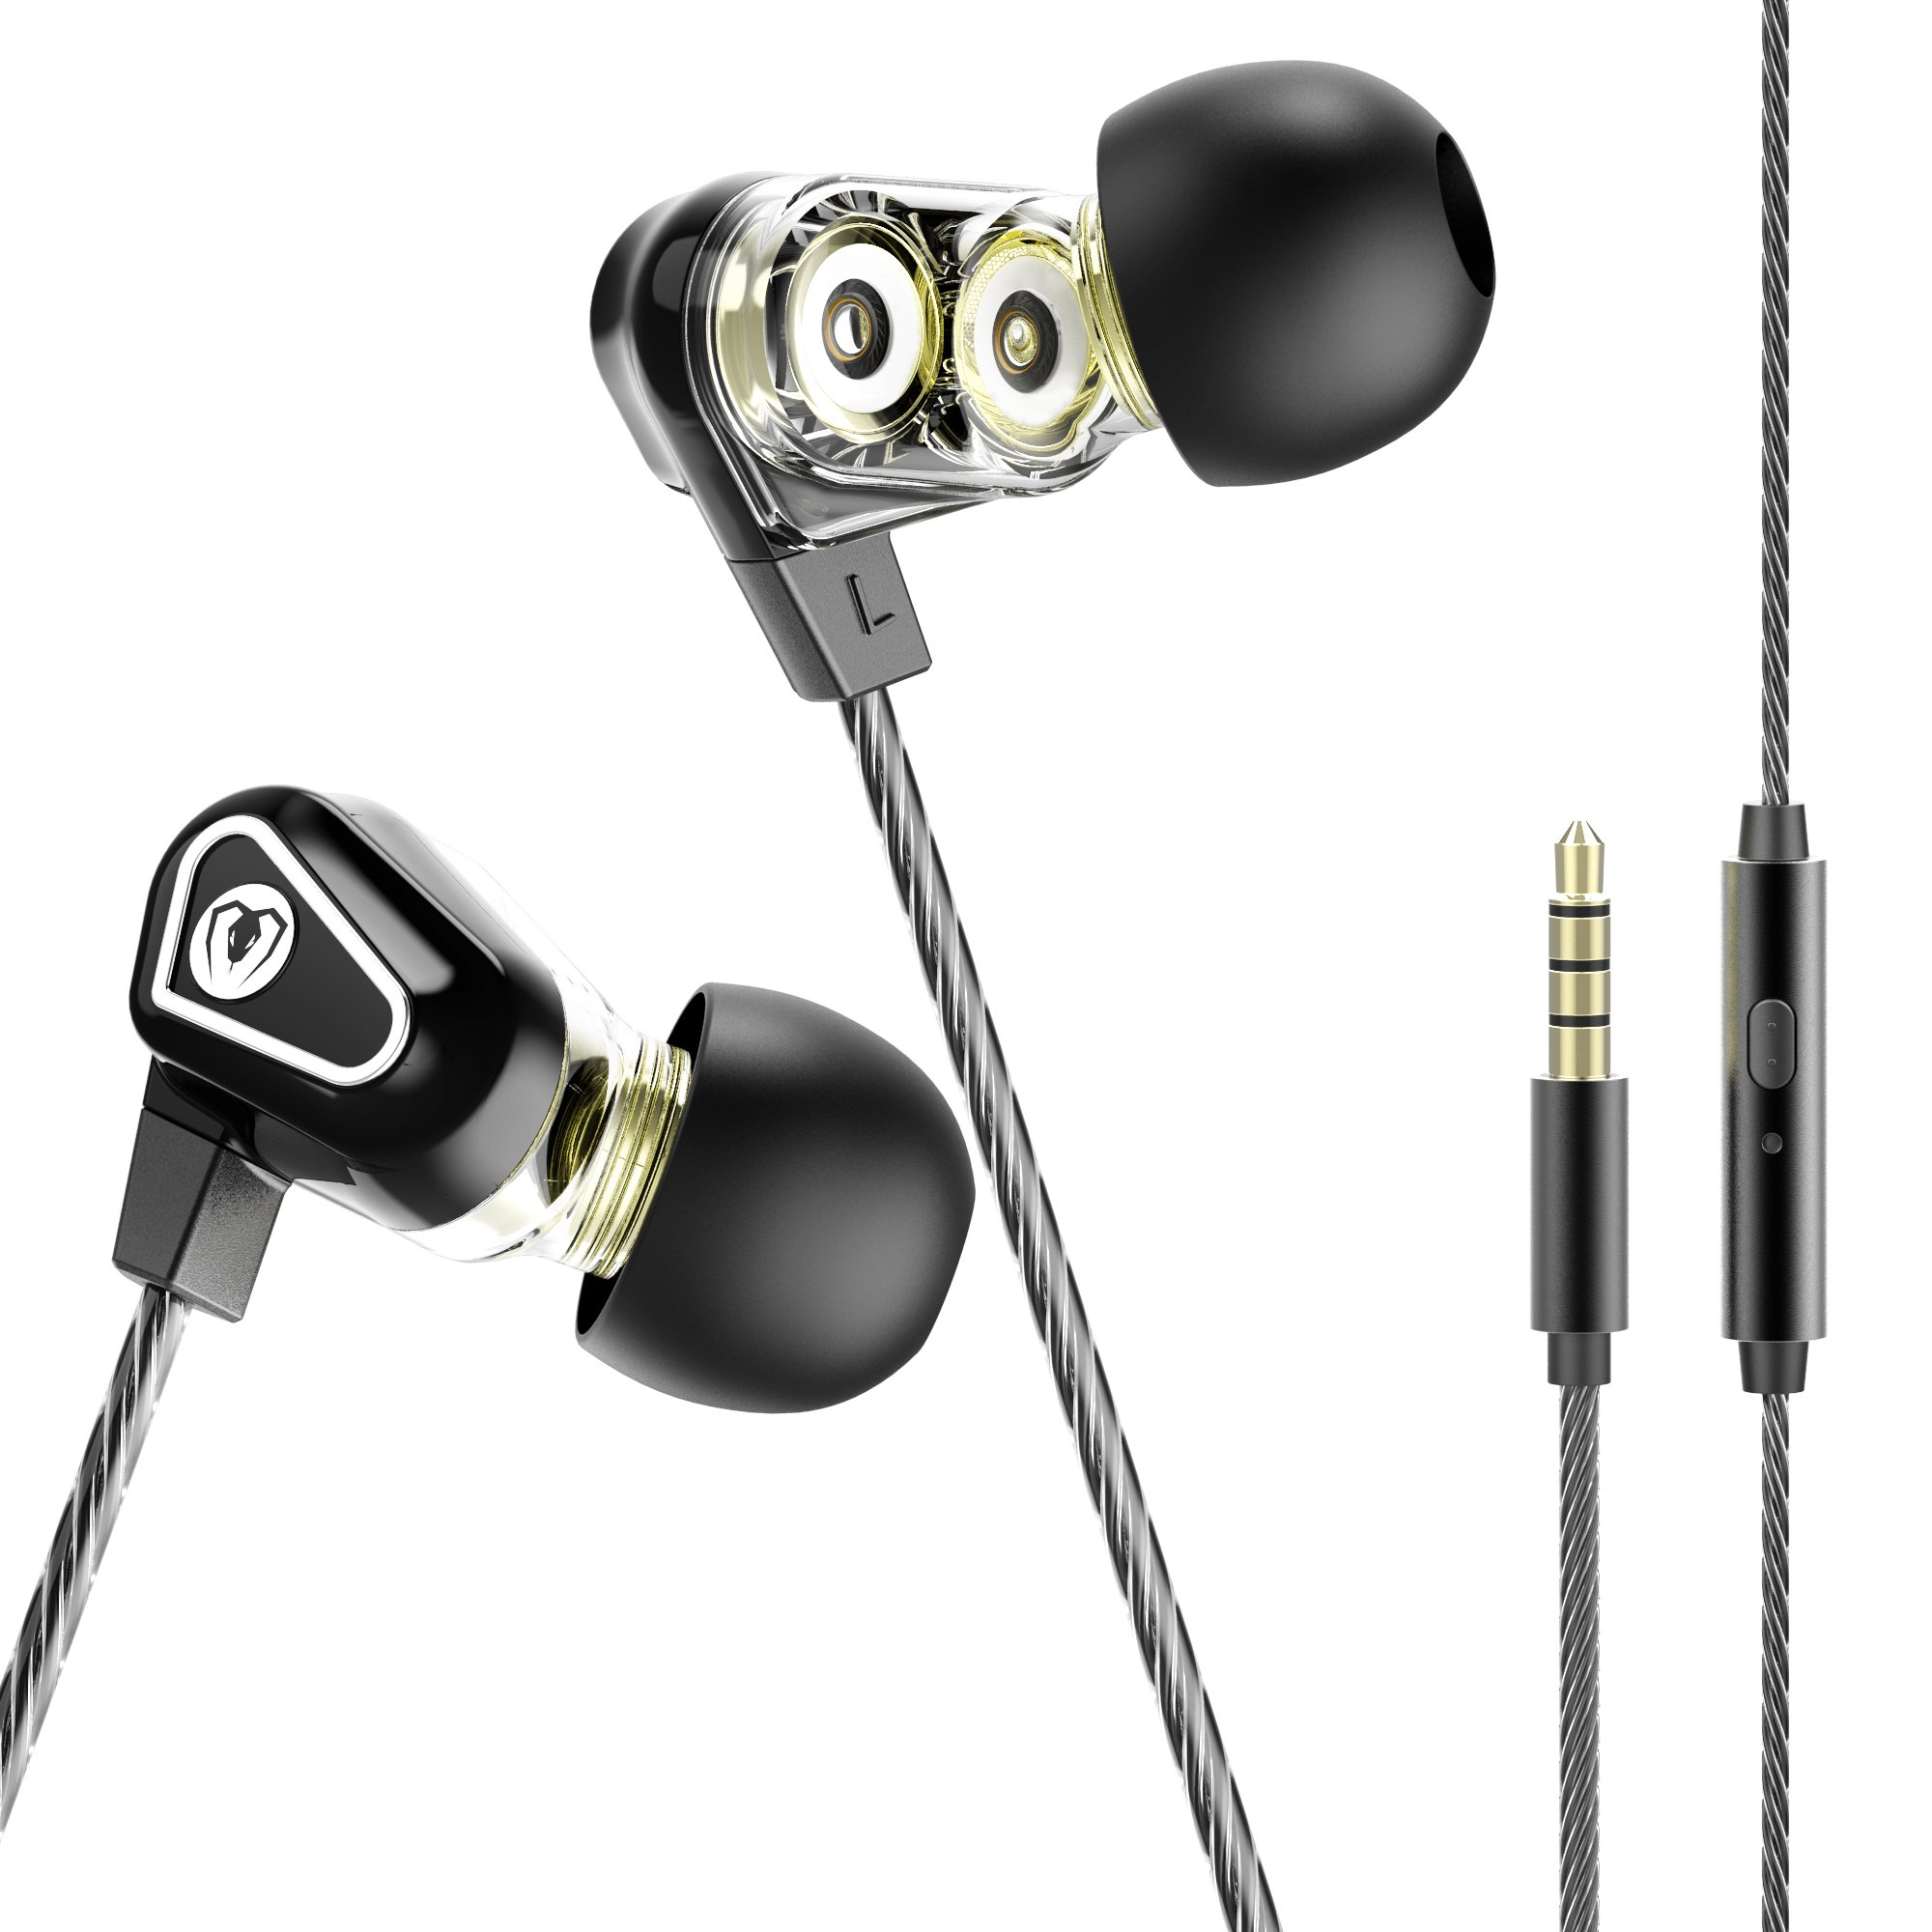 BlueFire Dual Driver Earphones 3.5mm Noise Isolation Wired Earbuds High Resolution Heavy Bass In-ear Headphones Earbuds with MIC and Volume Control for iPhone Android Smartphone Tablet